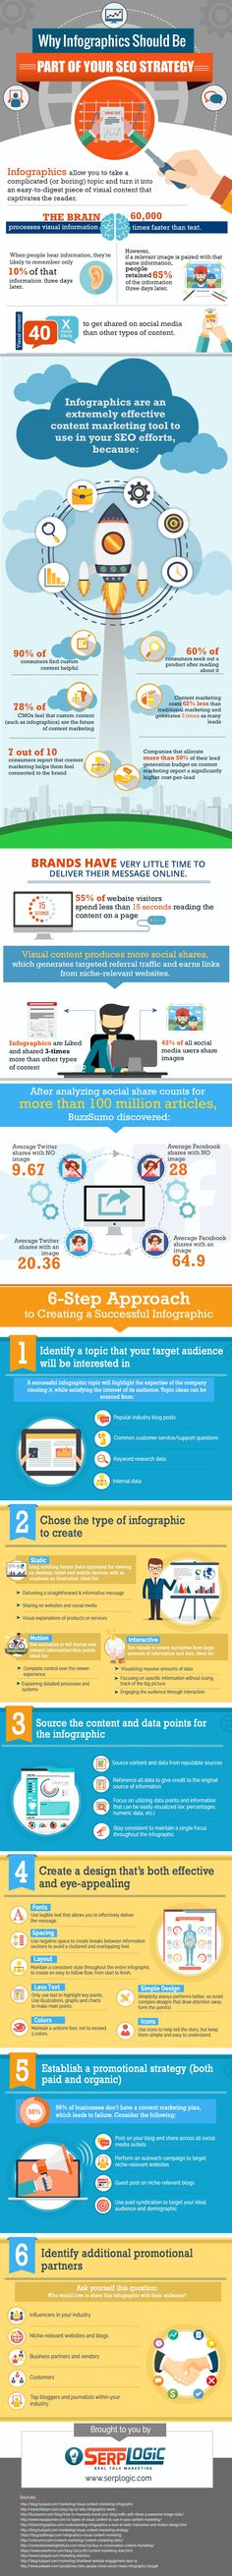 Why Infographics Should Be Part of Your SEO Strategy [Infographic], via @HubSpot